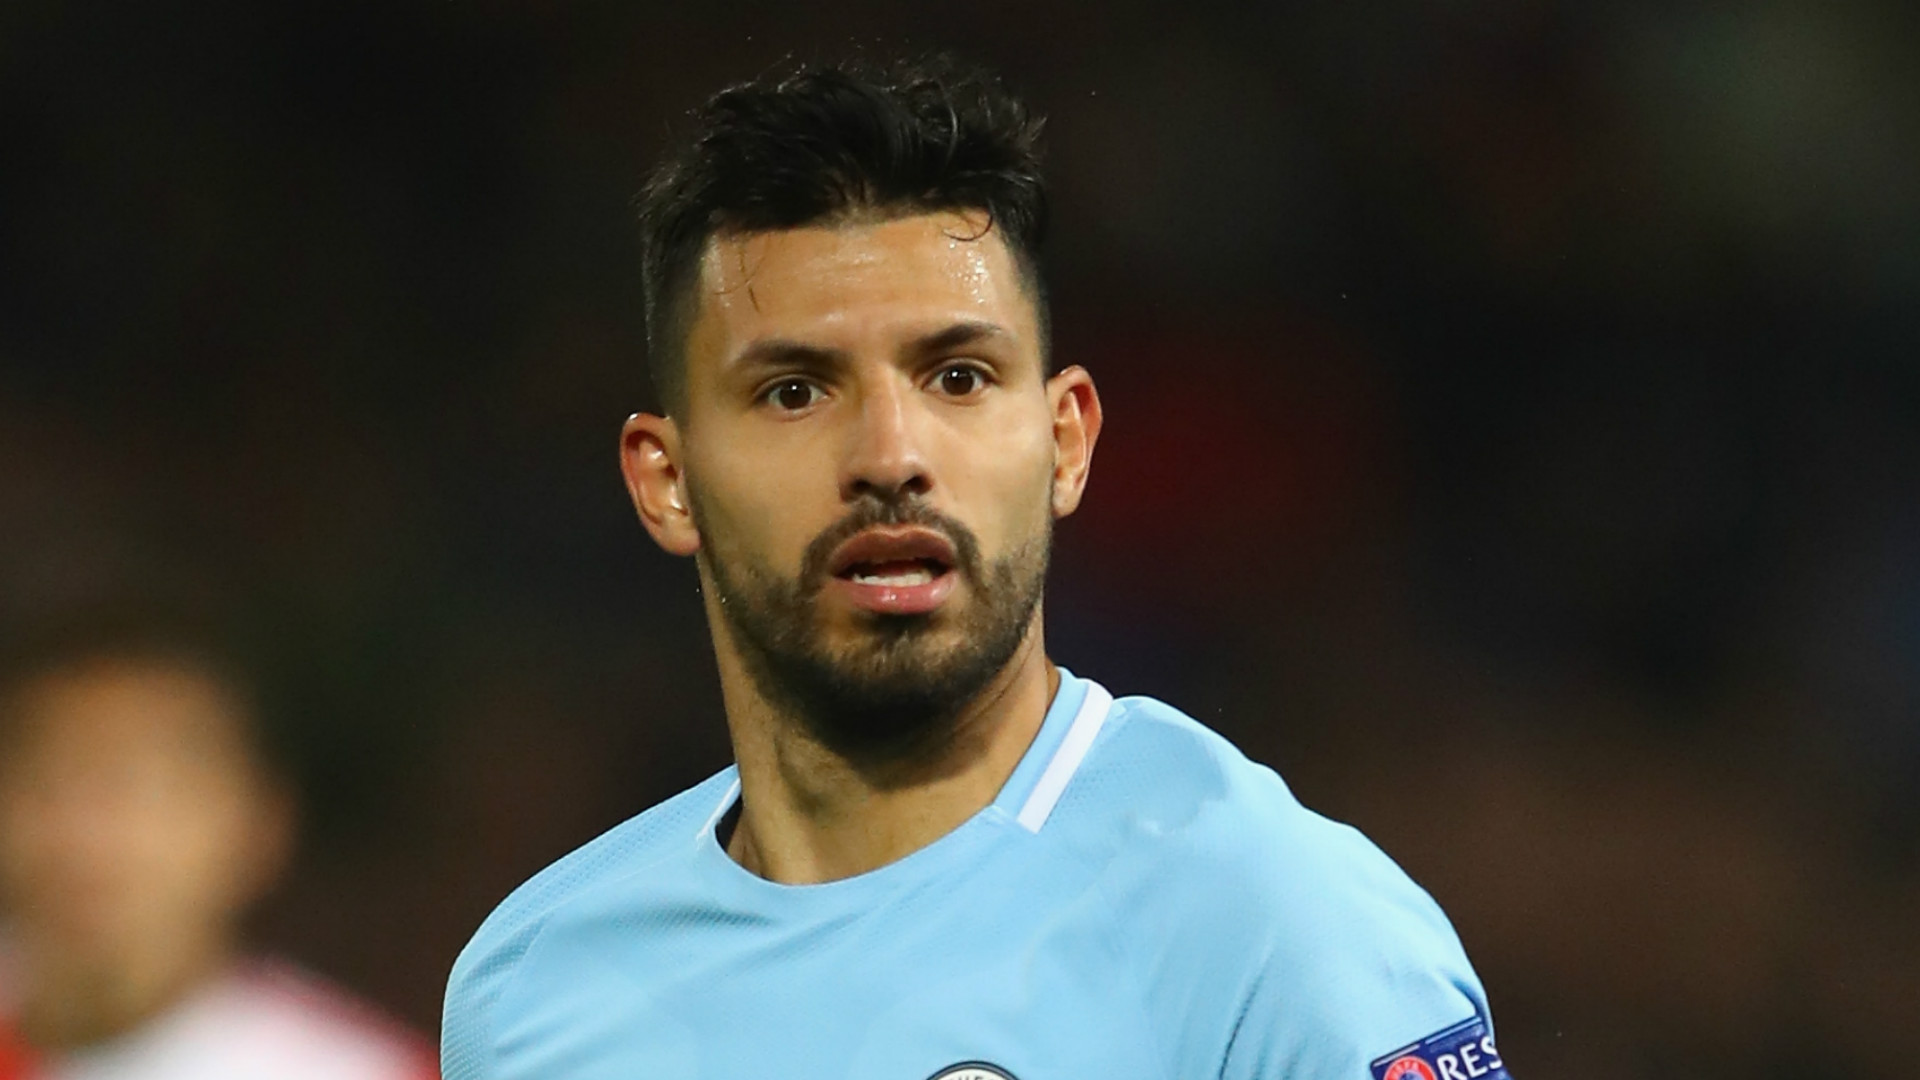 Manchester City confirm Aguero injured in auto accident